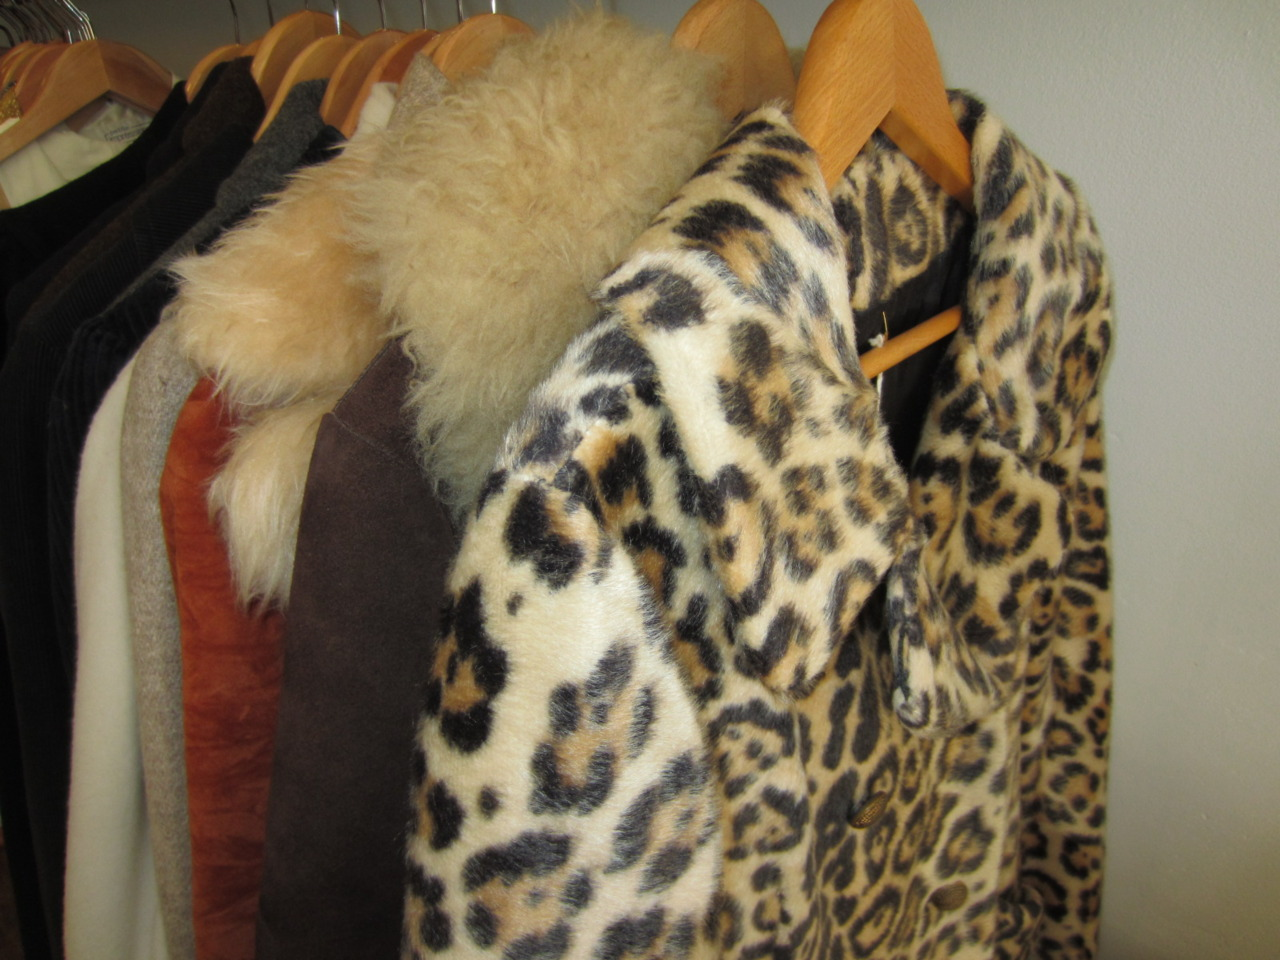 The weather will finally be feeling more like Fall this weekend.   This Friday, September 30th all COATS, JACKETS, VINTAGE FURS & more Fall Merchandise will be here!   Stop by the shop to see what's arrived!   XO antoinette